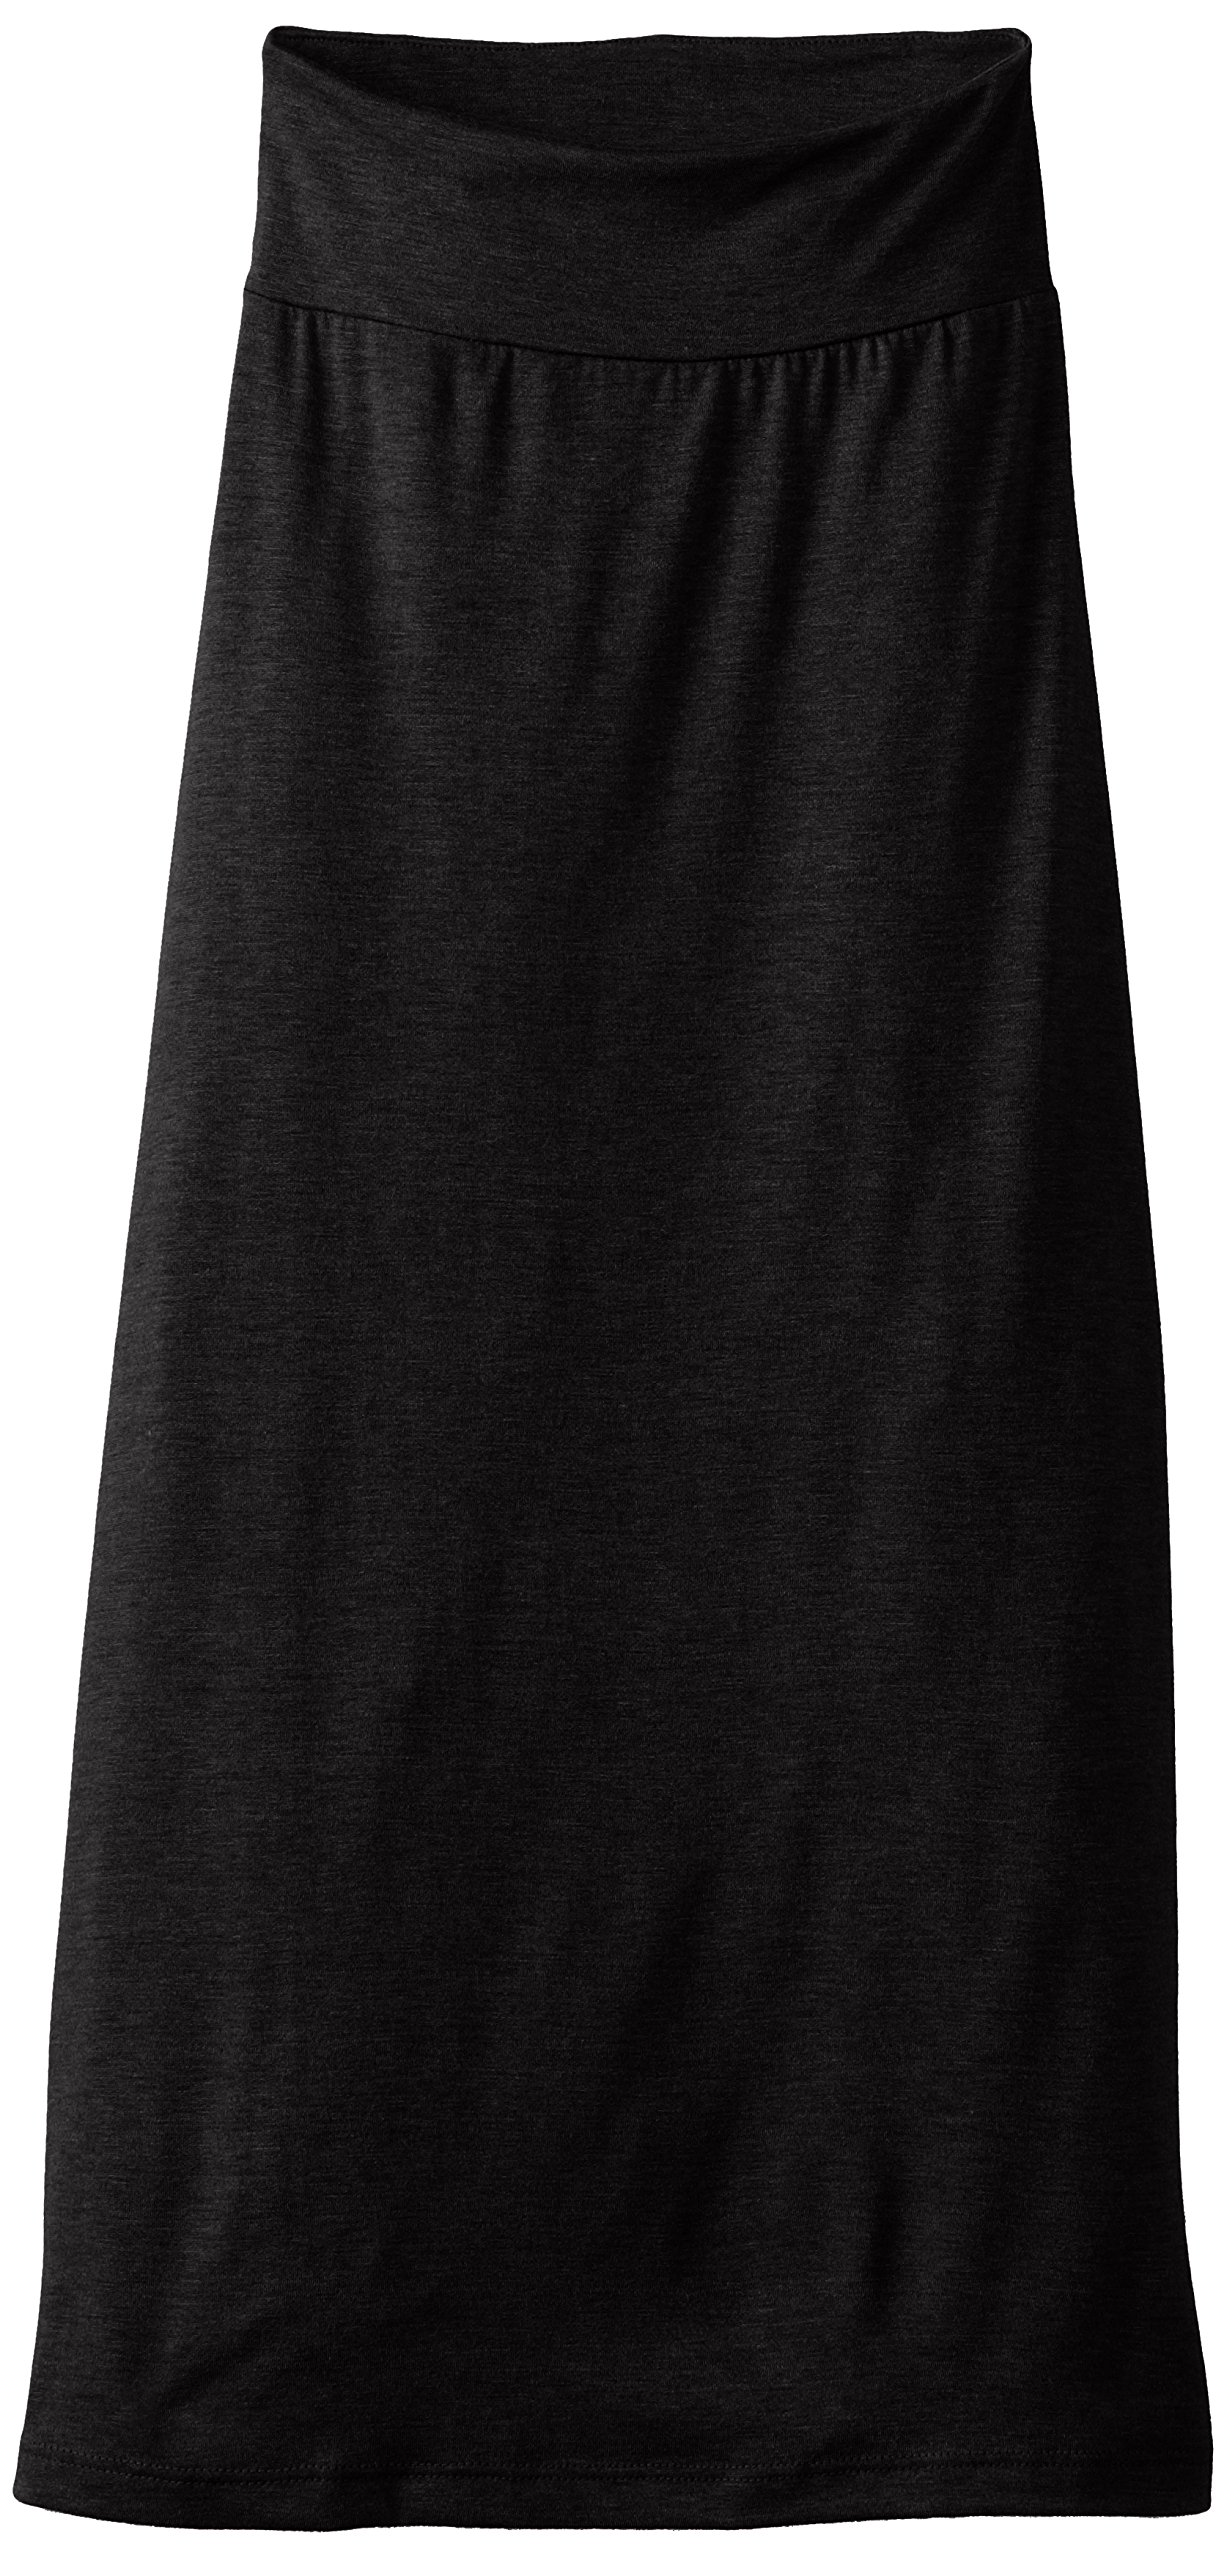 Amy Byer Girl's 7-16 Solid Maxi Skirt, Black, X-Large